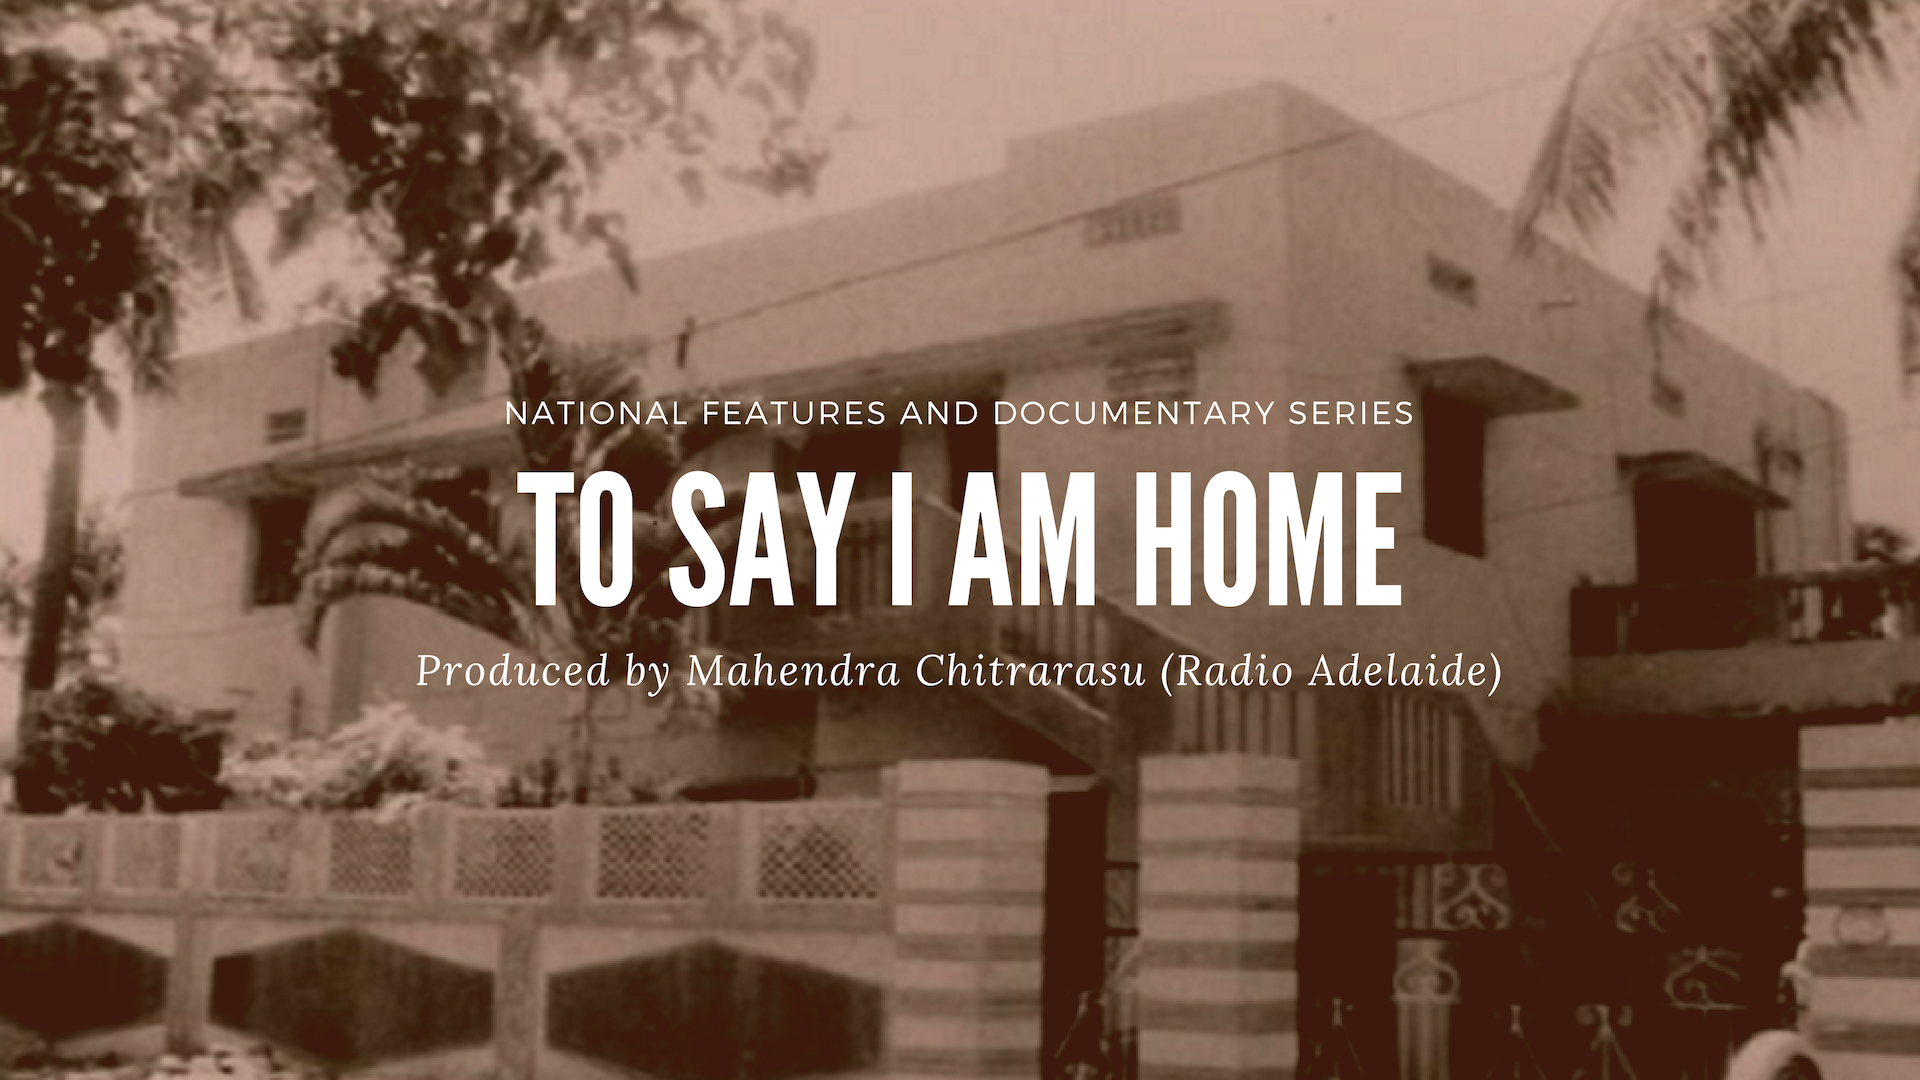 National Features and Documentary Series